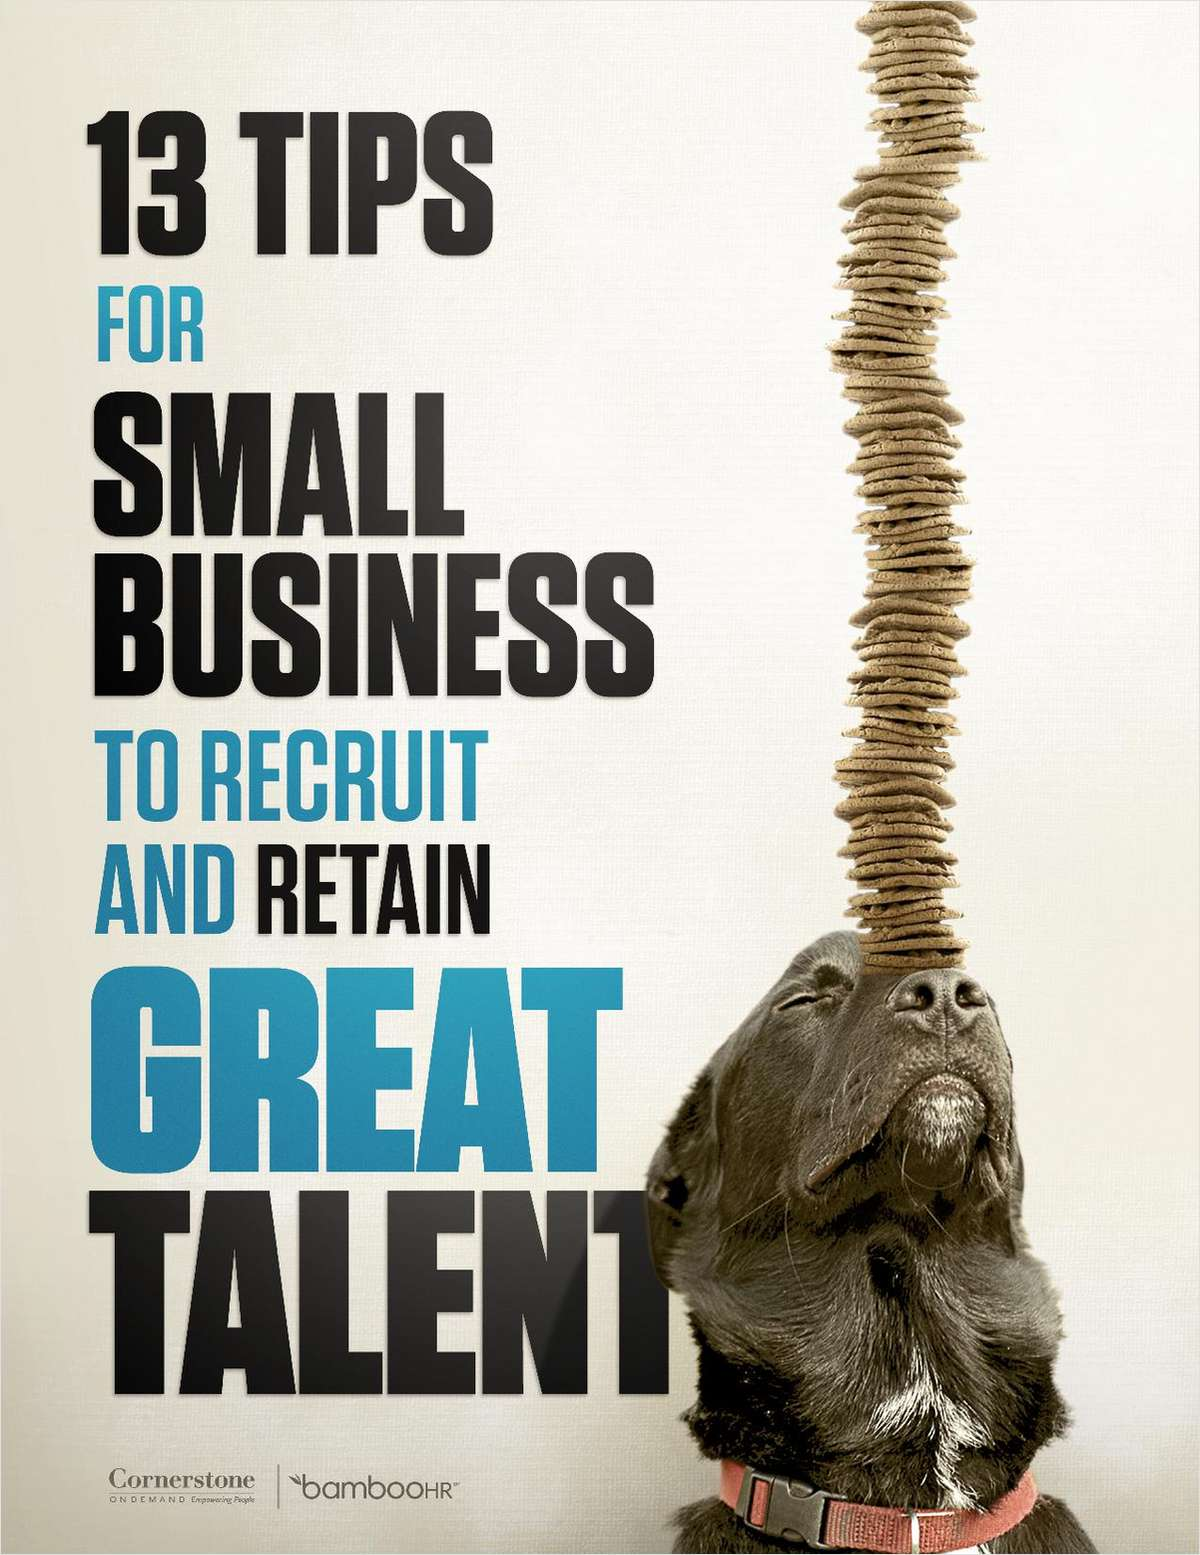 13 Tips for Small Business to Recruit and Retain Great Talent